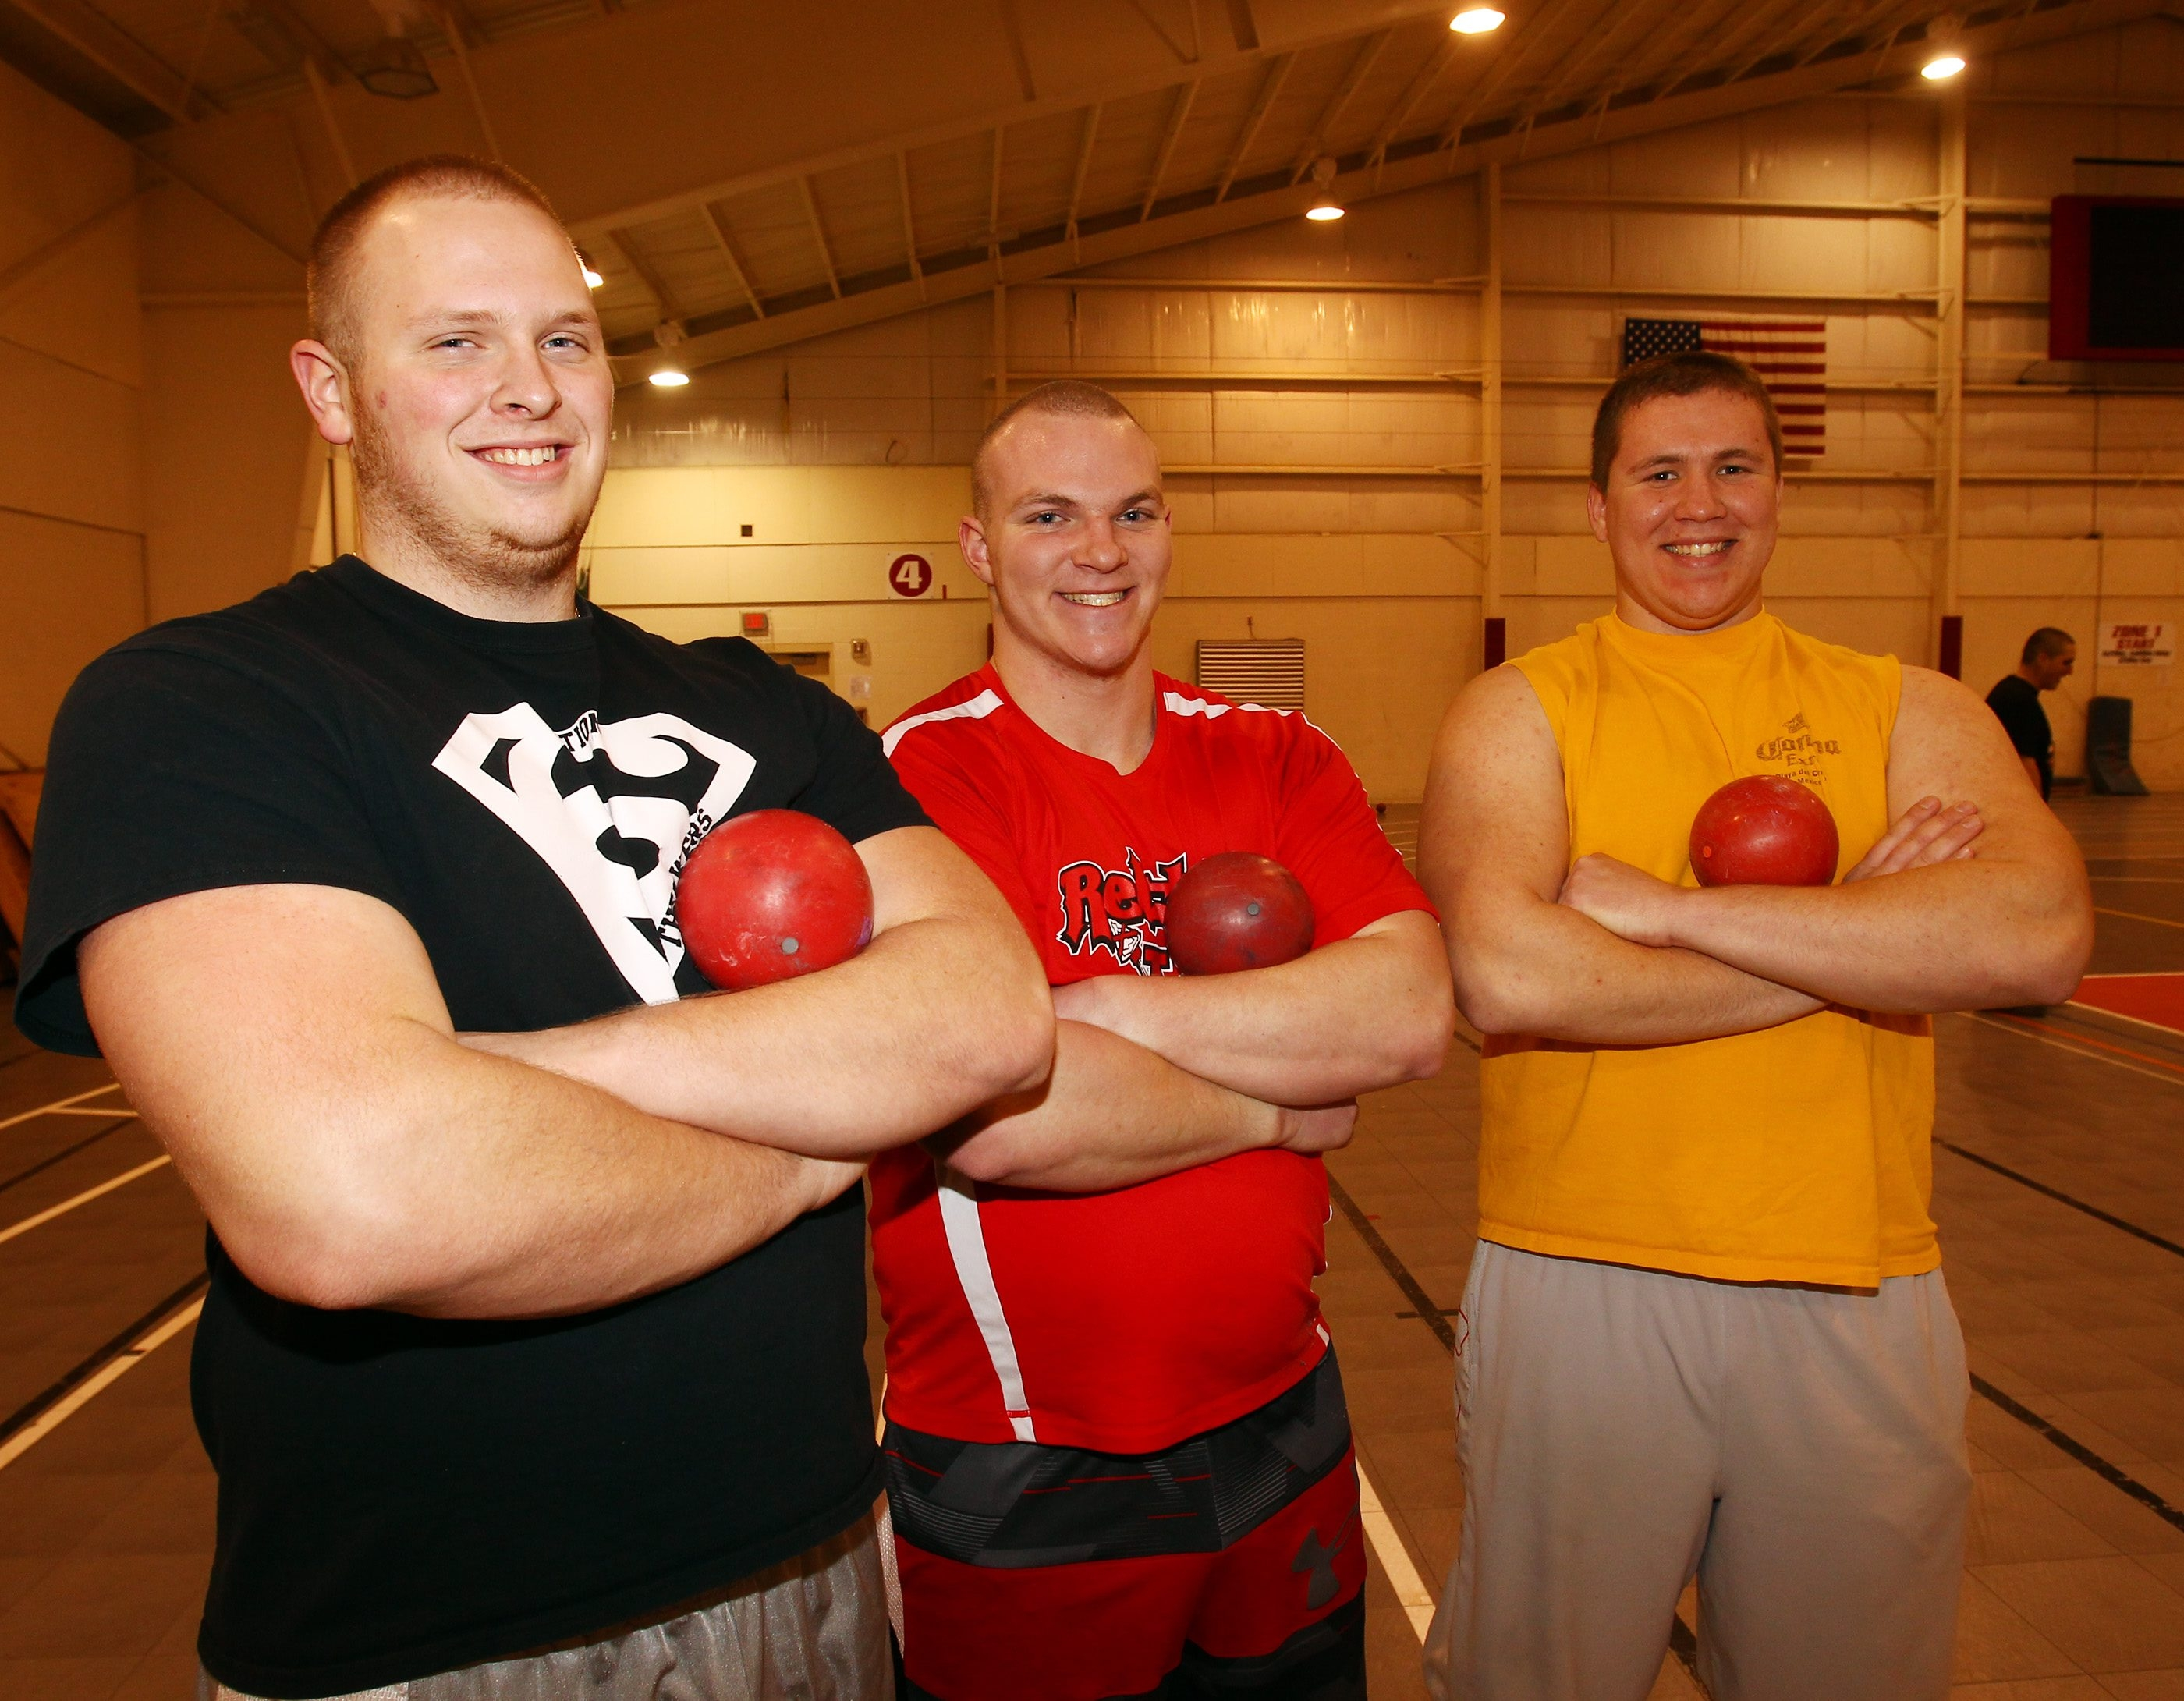 Lancaster throwers Tony DeYoung and Brandon Sicurella, center, are competing with Orchard Park's Dawson Hillis, right, for a chance to go to the state meet.